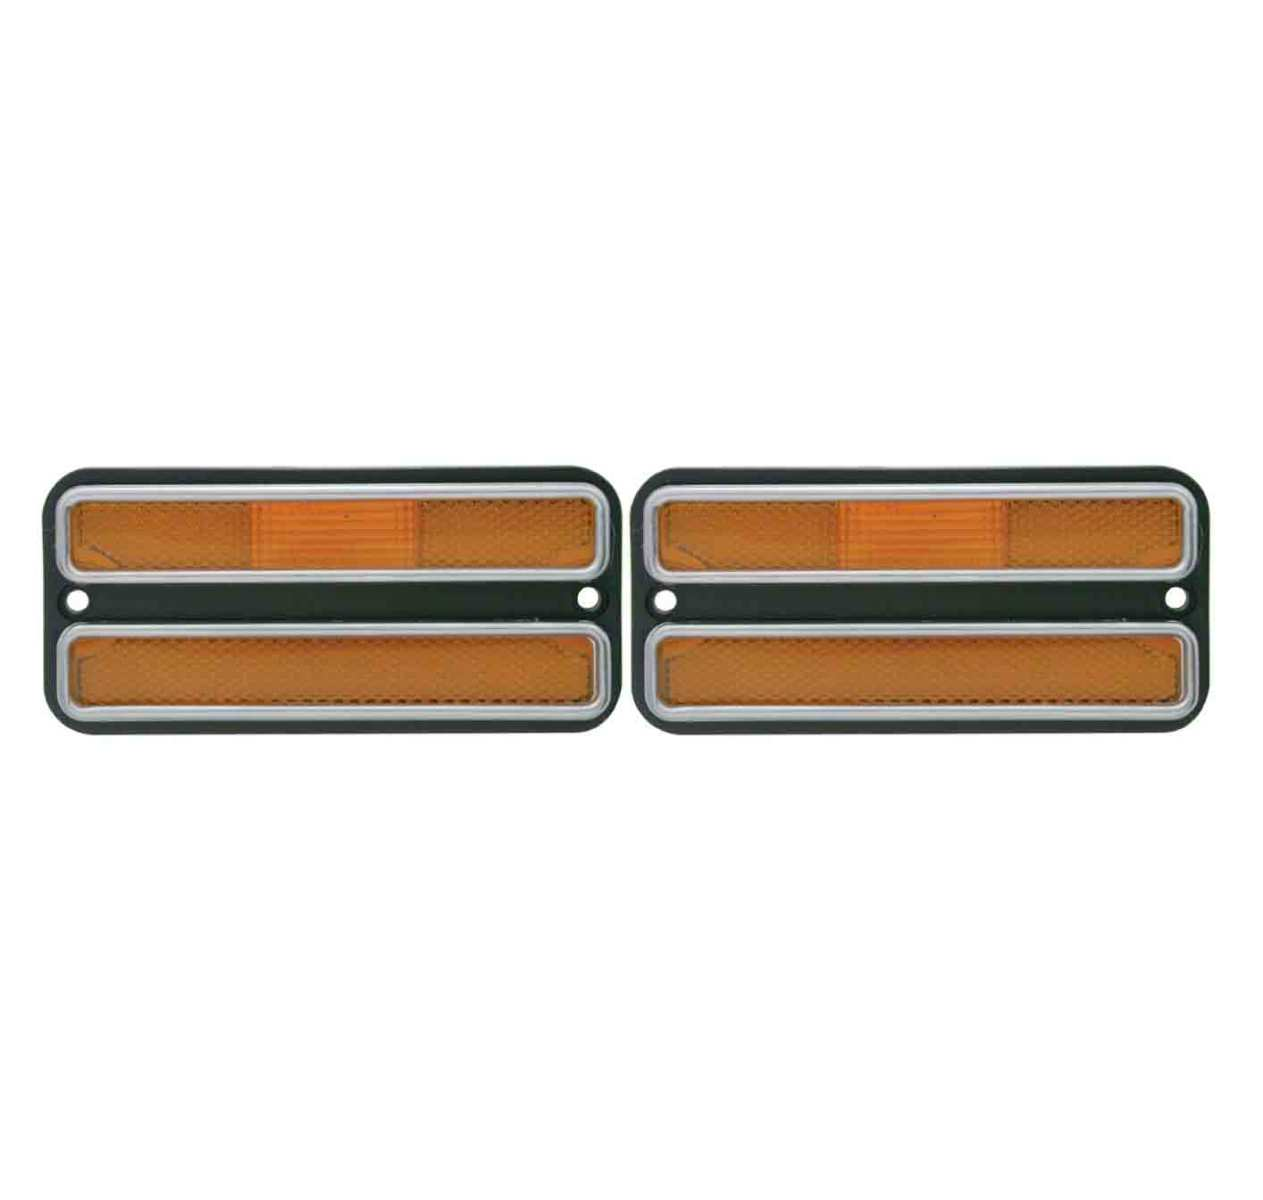 2 1968 1972 chevy truck amber front clearance side marker light housings pirate mfg. Black Bedroom Furniture Sets. Home Design Ideas